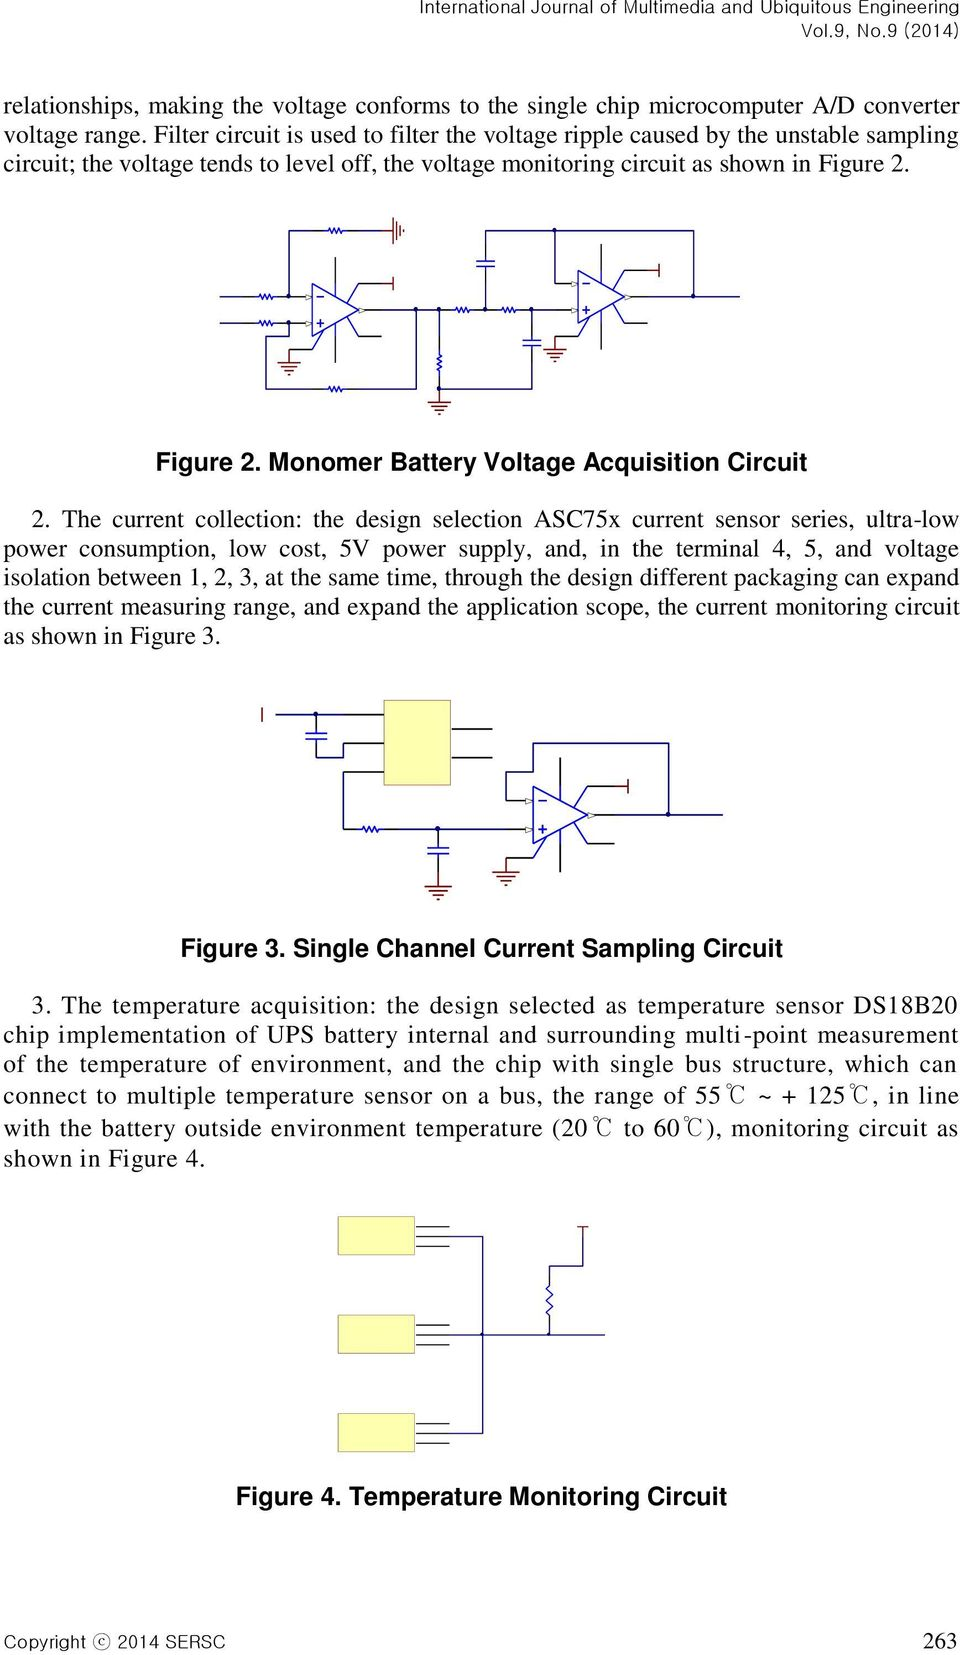 2P A3U 46PCM CVA 8 6 CVA 9NICA 8NICA International Journal of Multimedia and Ubiquitous Engineering relationships, making the voltage conforms to the single chip microcomputer A/ converter voltage